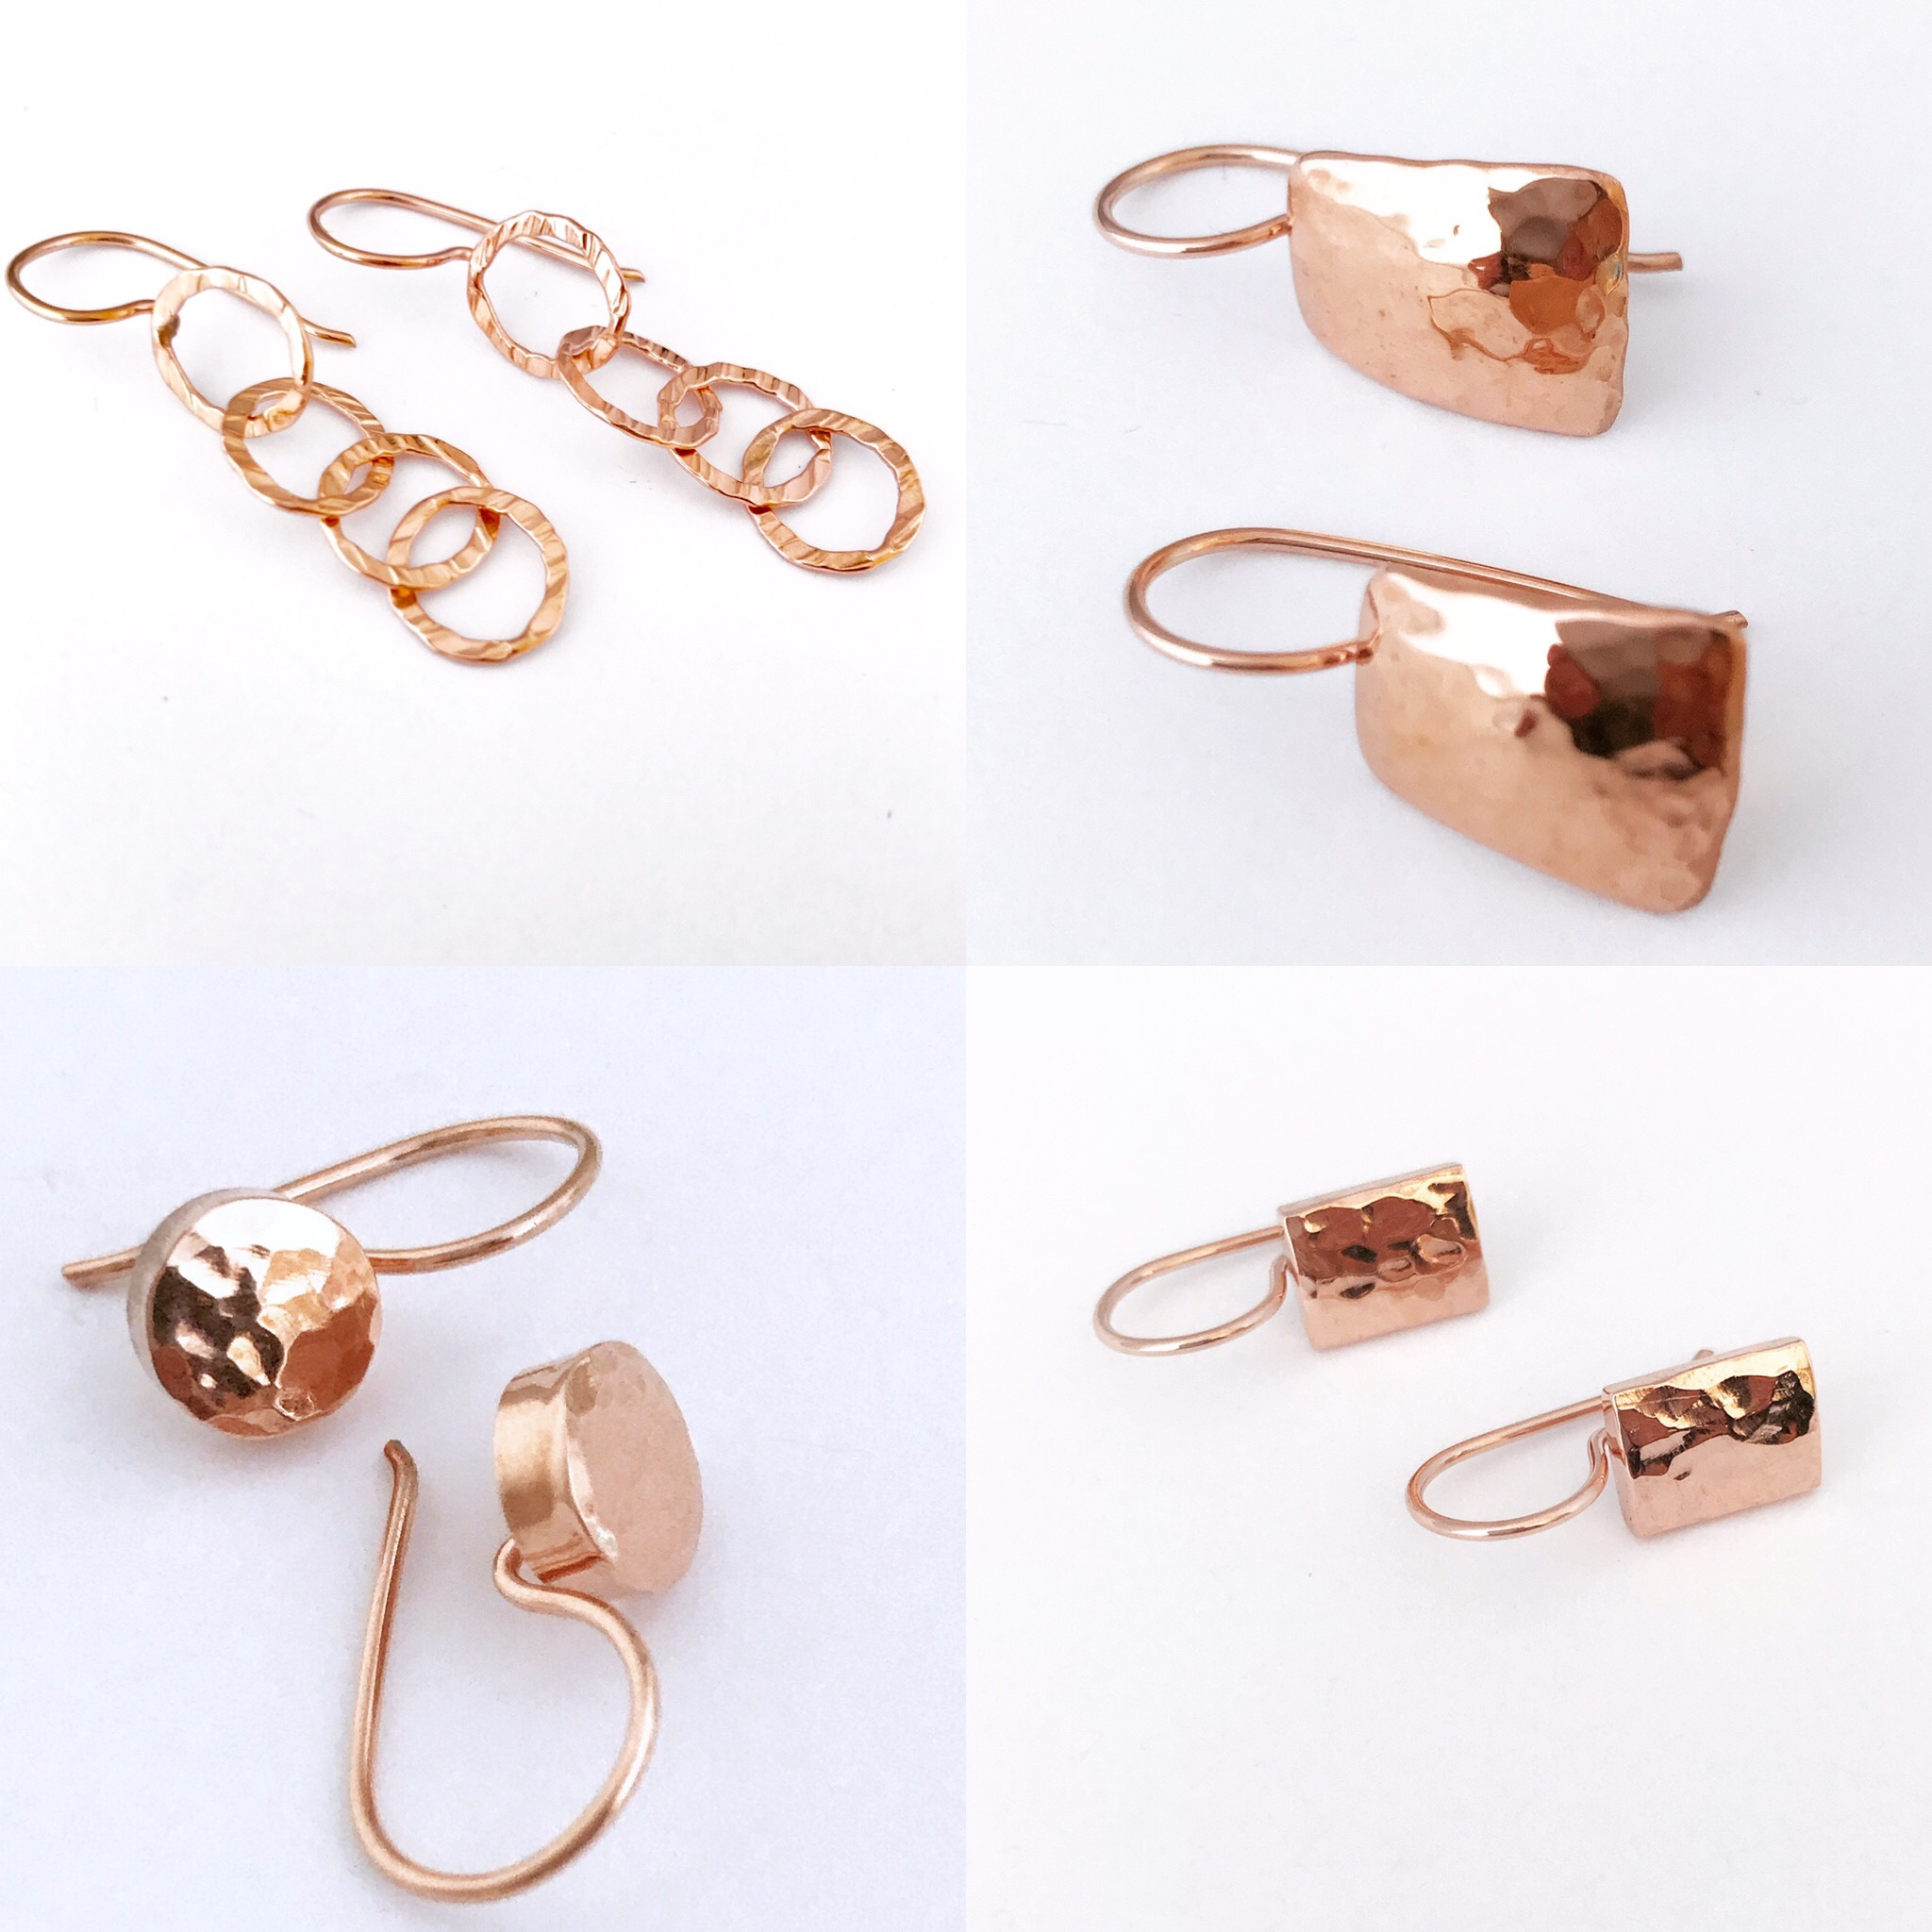 Handcrafted Rose Gold hammered earrings. Earrings range from $90 to $100.